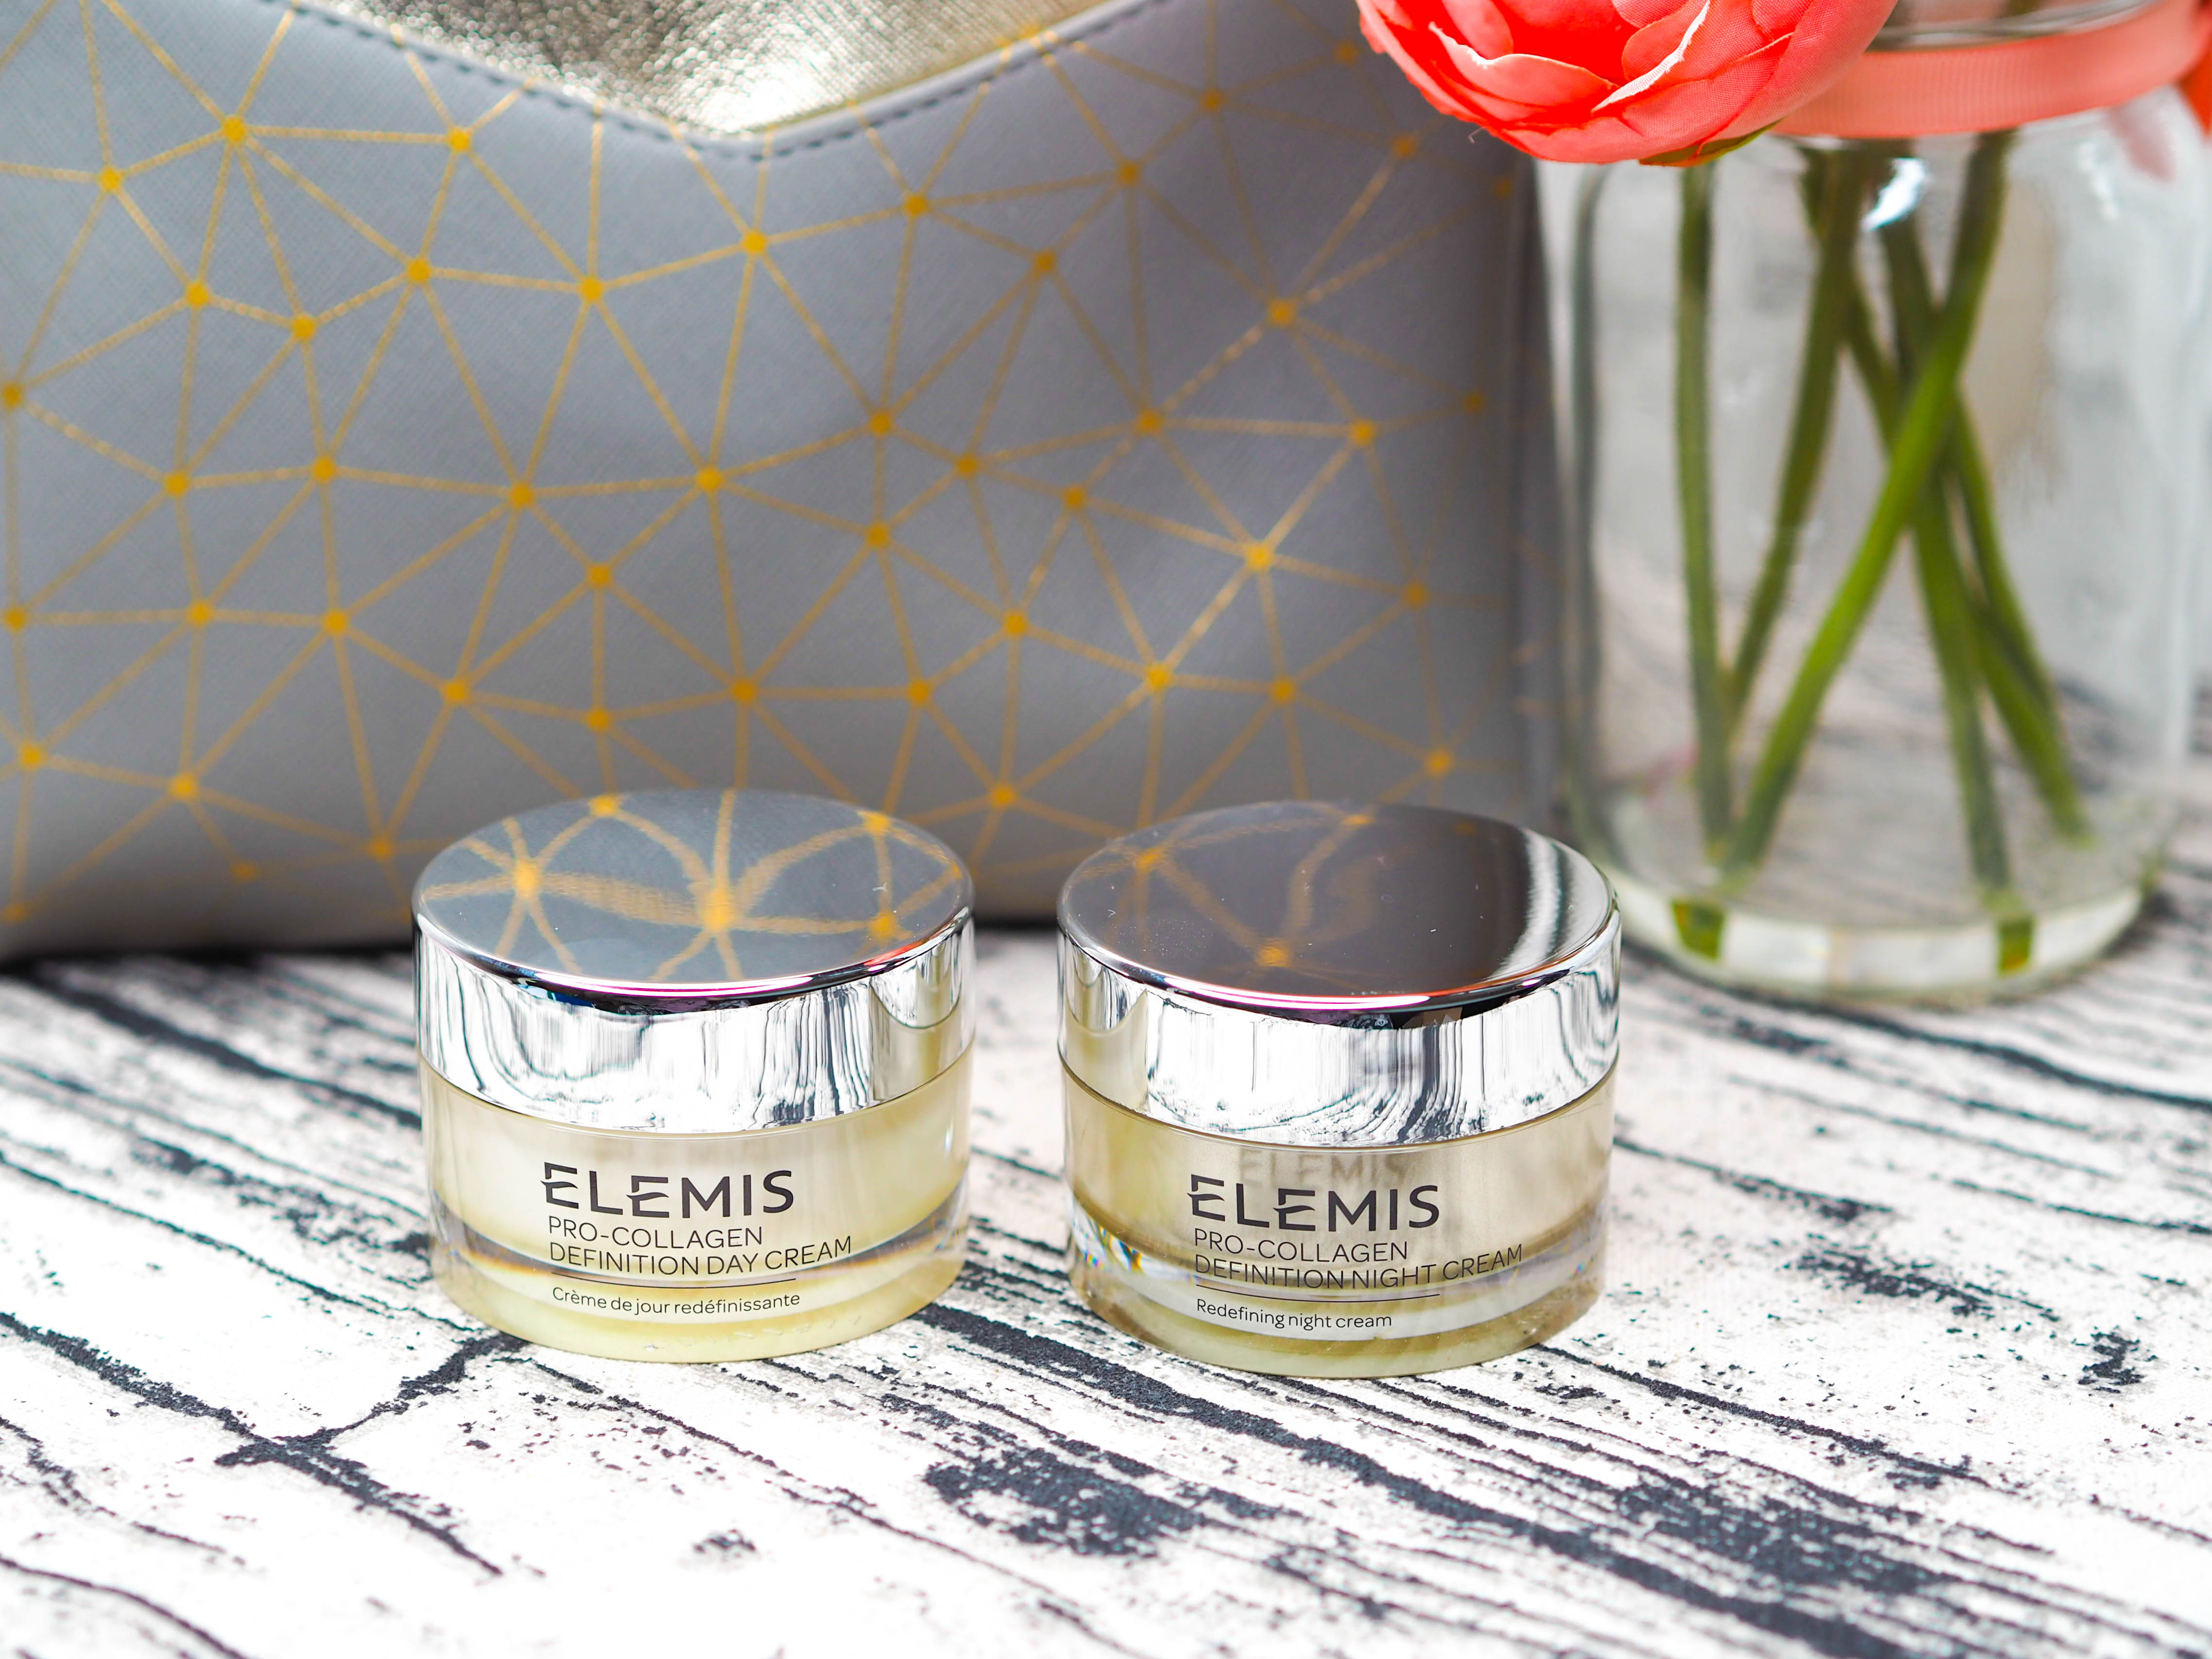 February 2019 QVC TSV Elemis Lift & Firm 4-Piece Collection